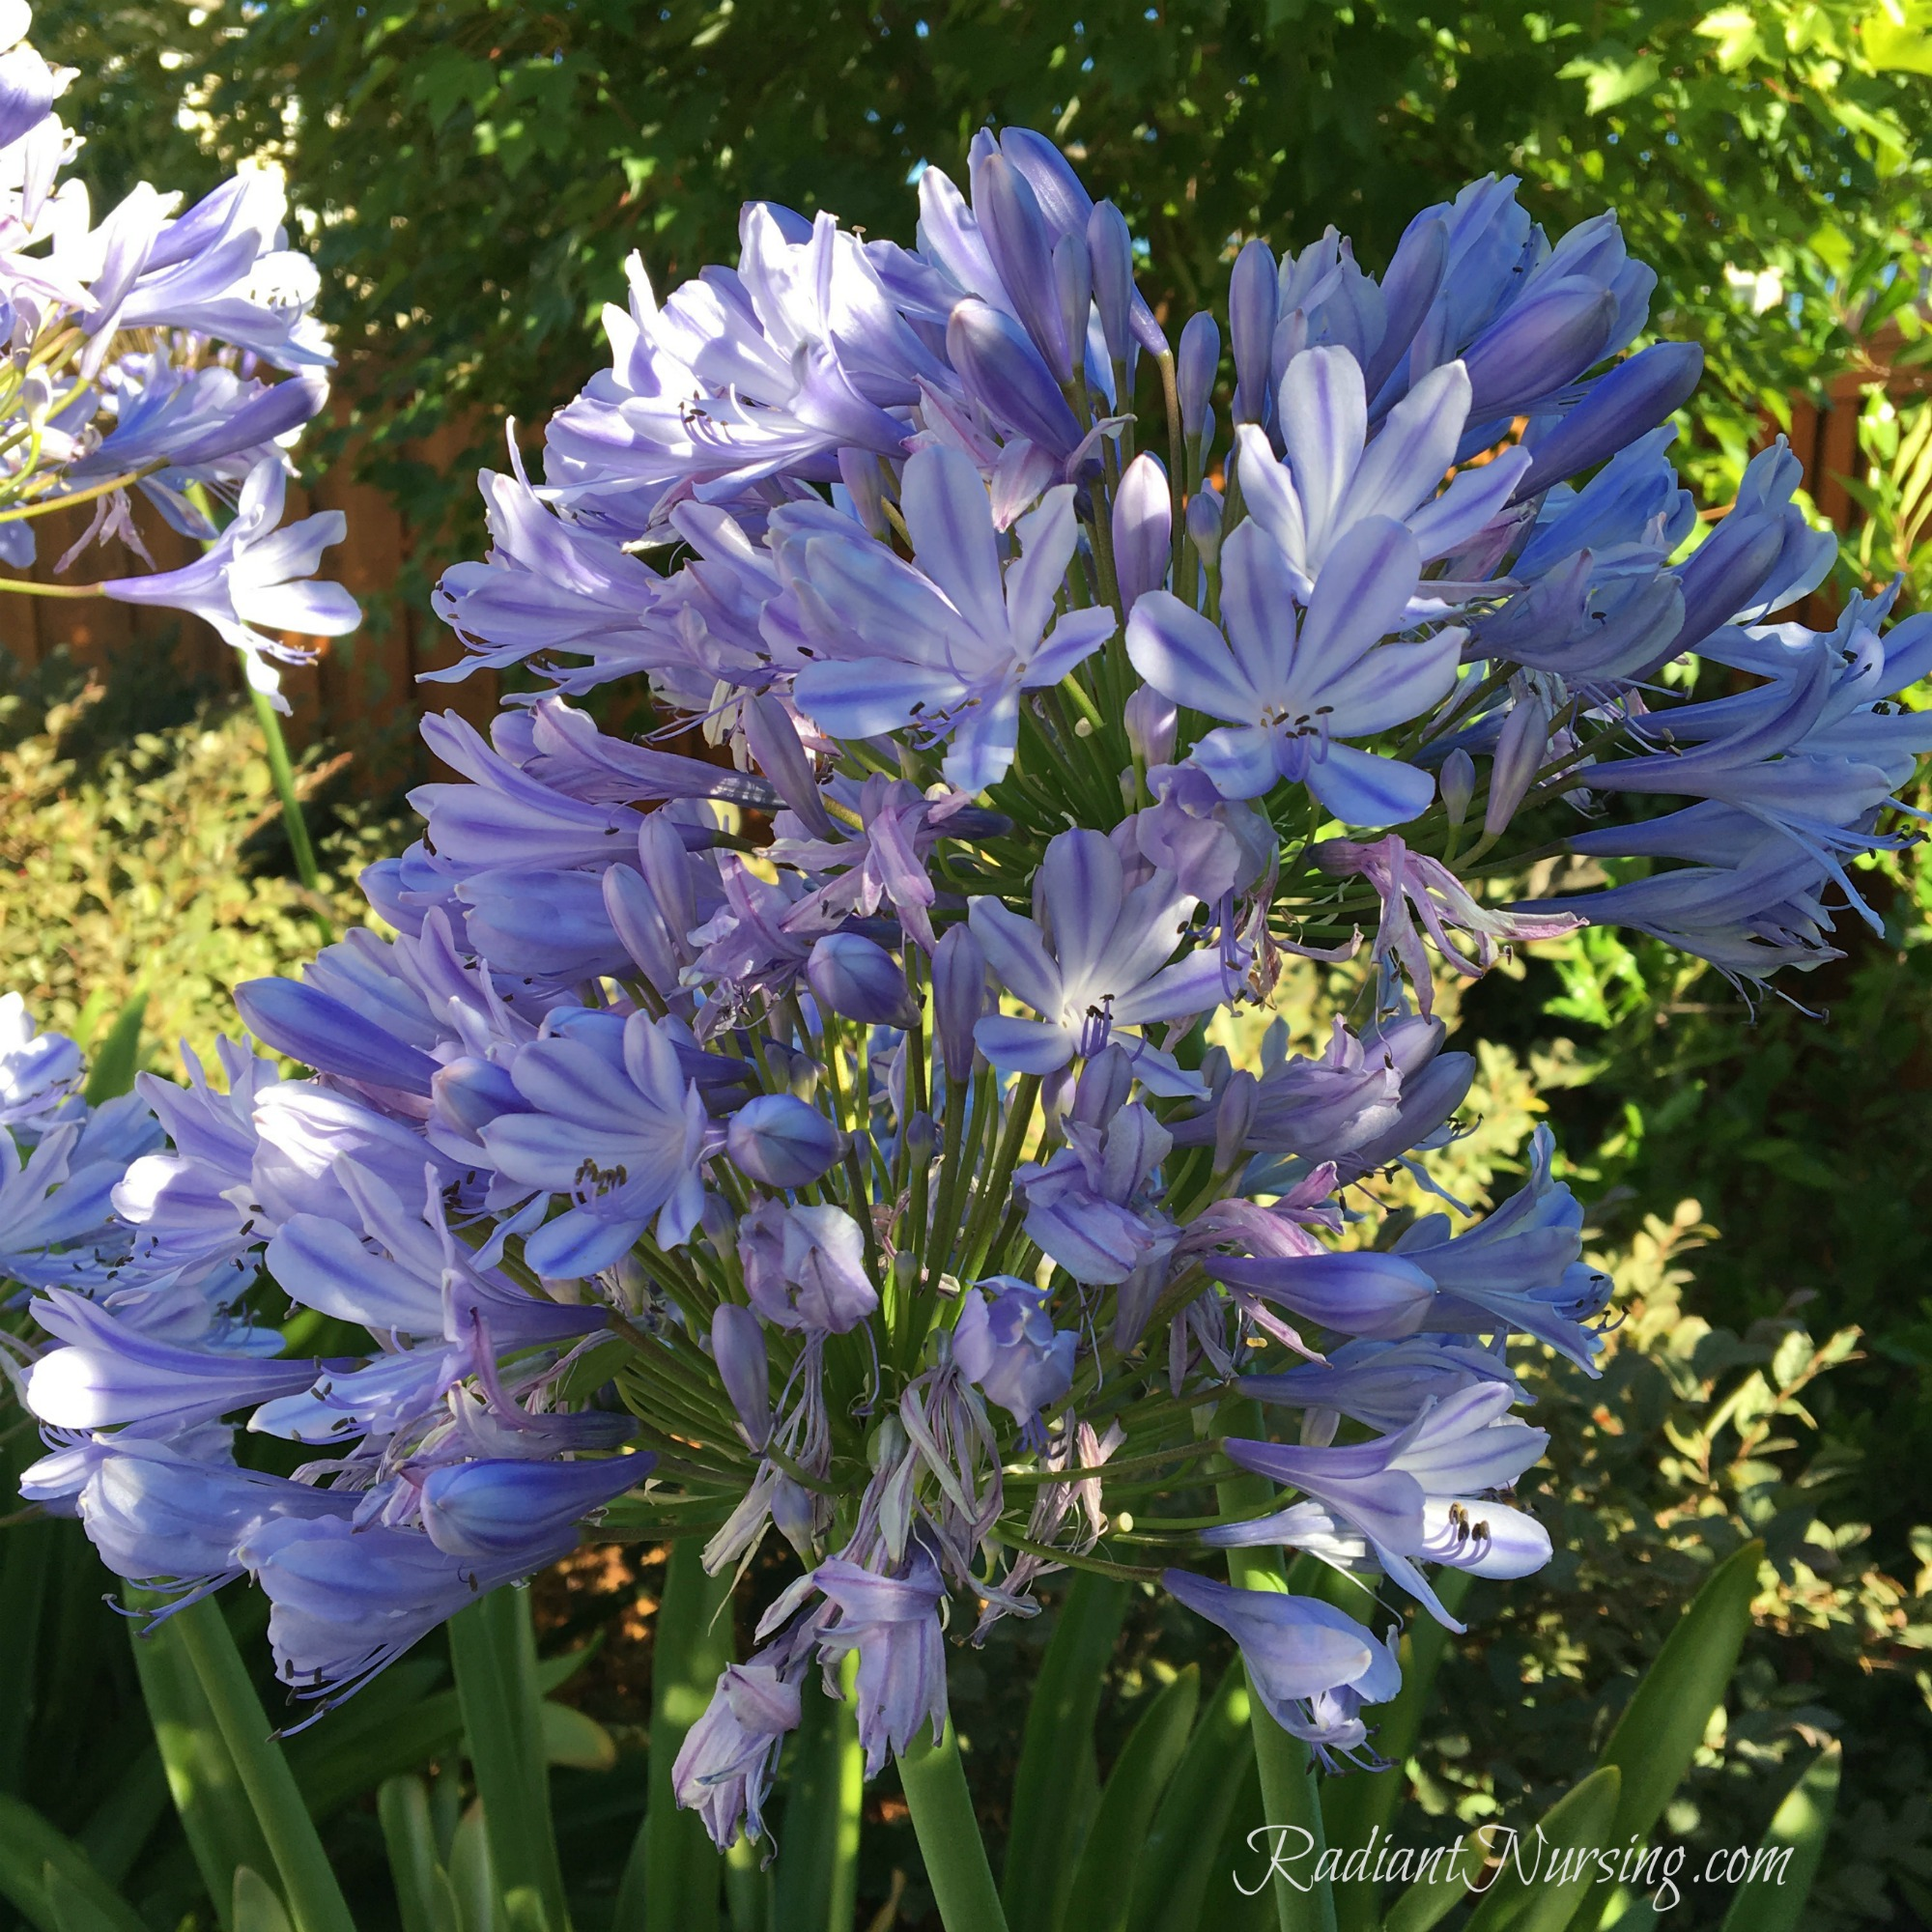 Flowers bloom with all their hearts in Agapanthus.